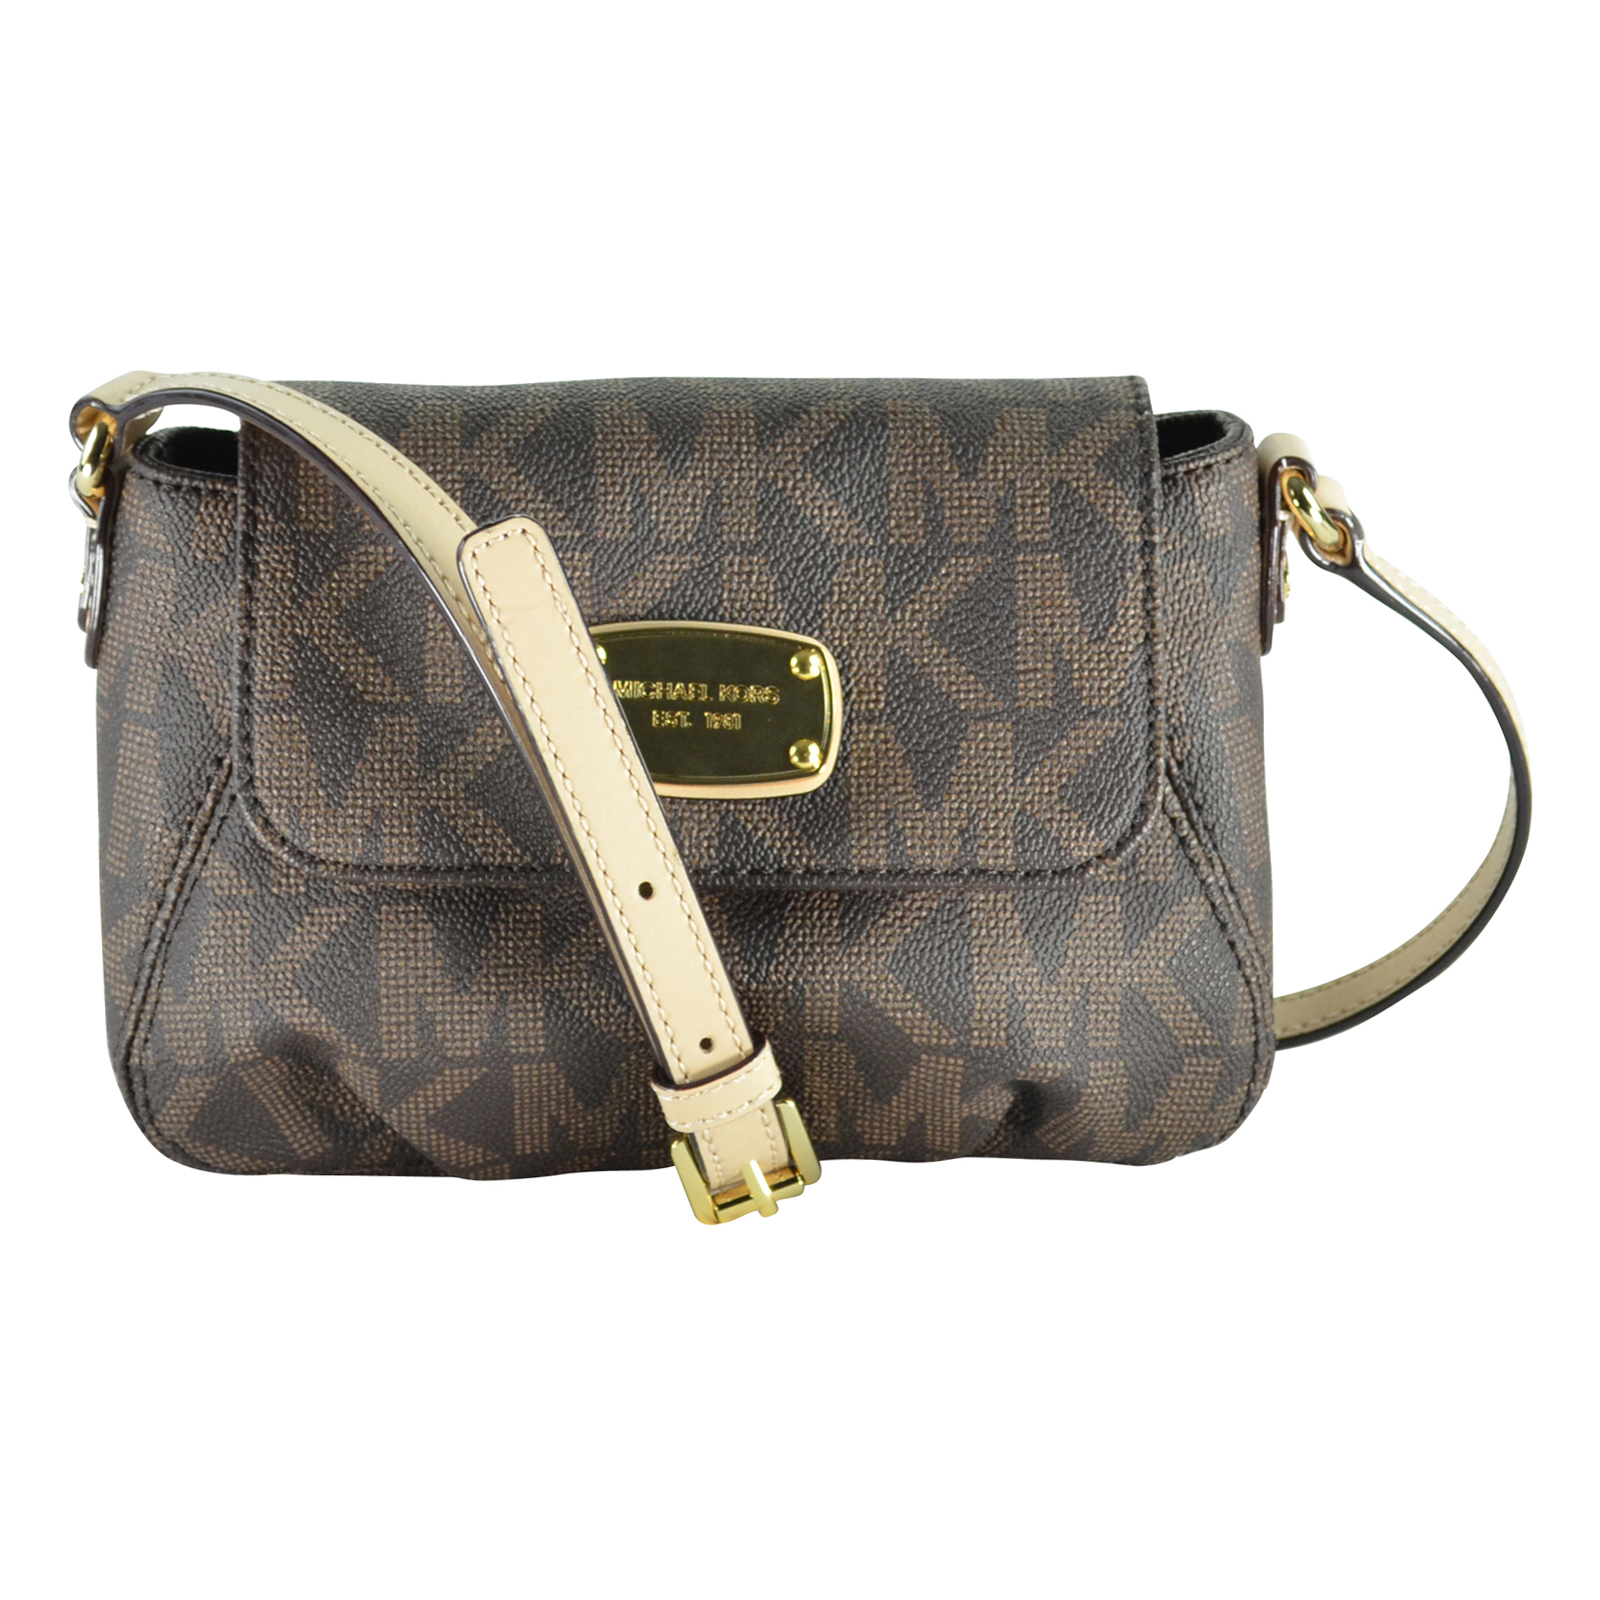 auth michael kors leather signature pvc small flap